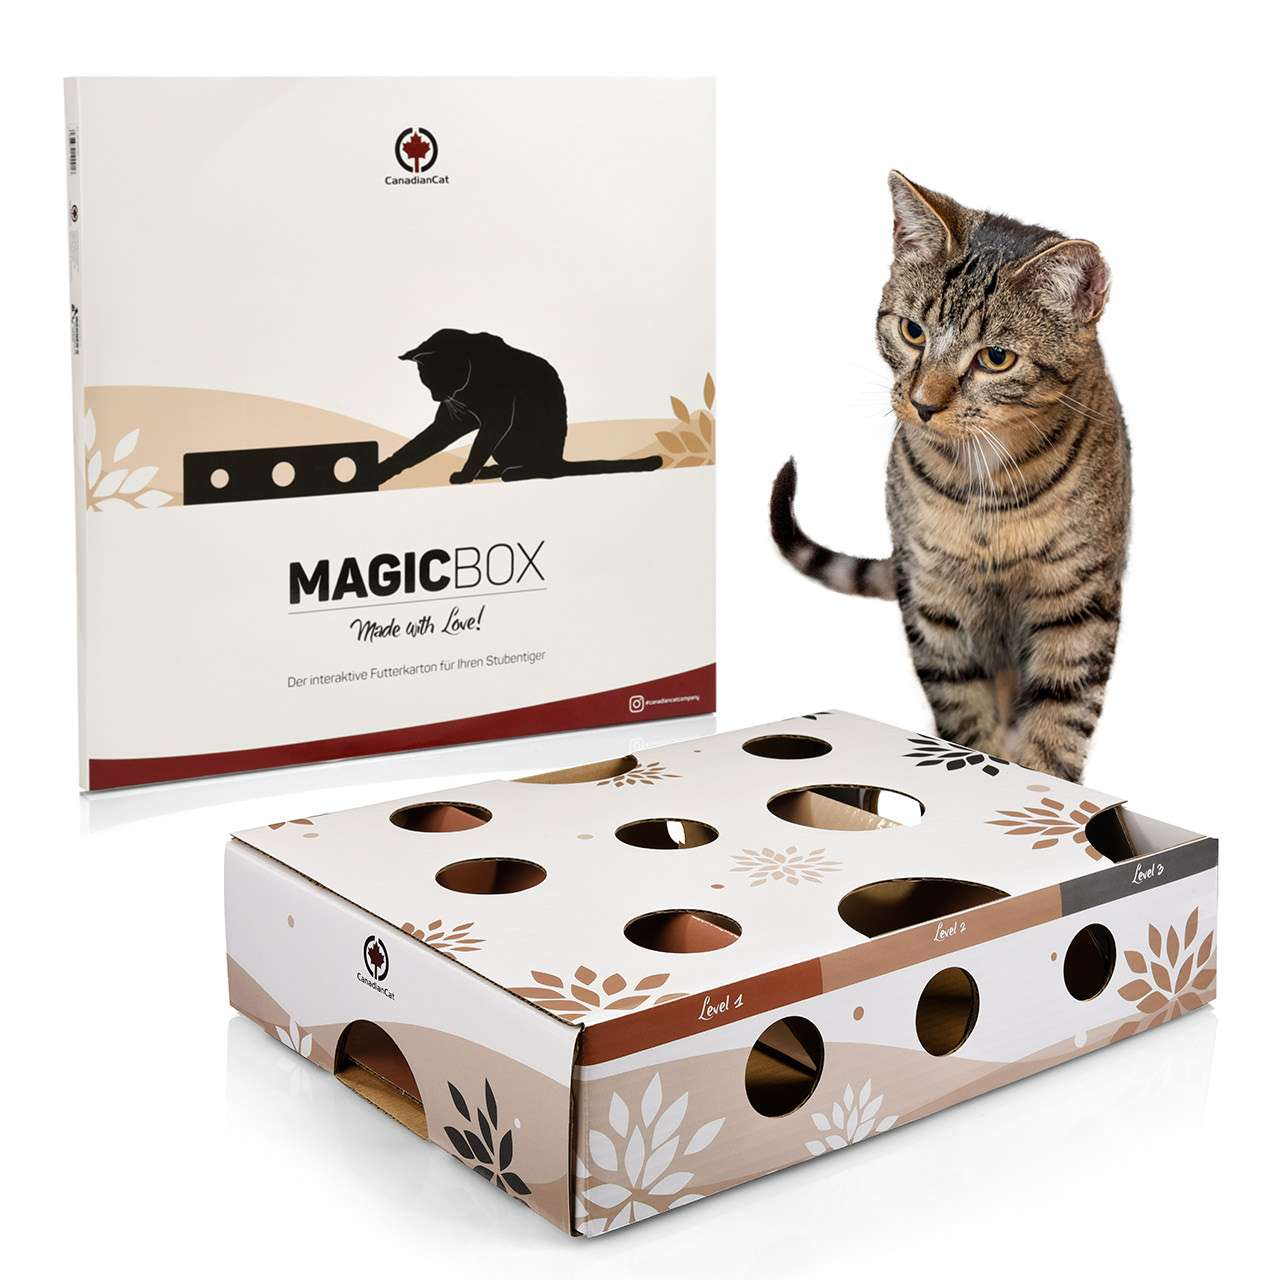 Cat toy MagicBox   approx. 8 x 8 x 8,8 cm   activitybox intelligence toy  food game agility